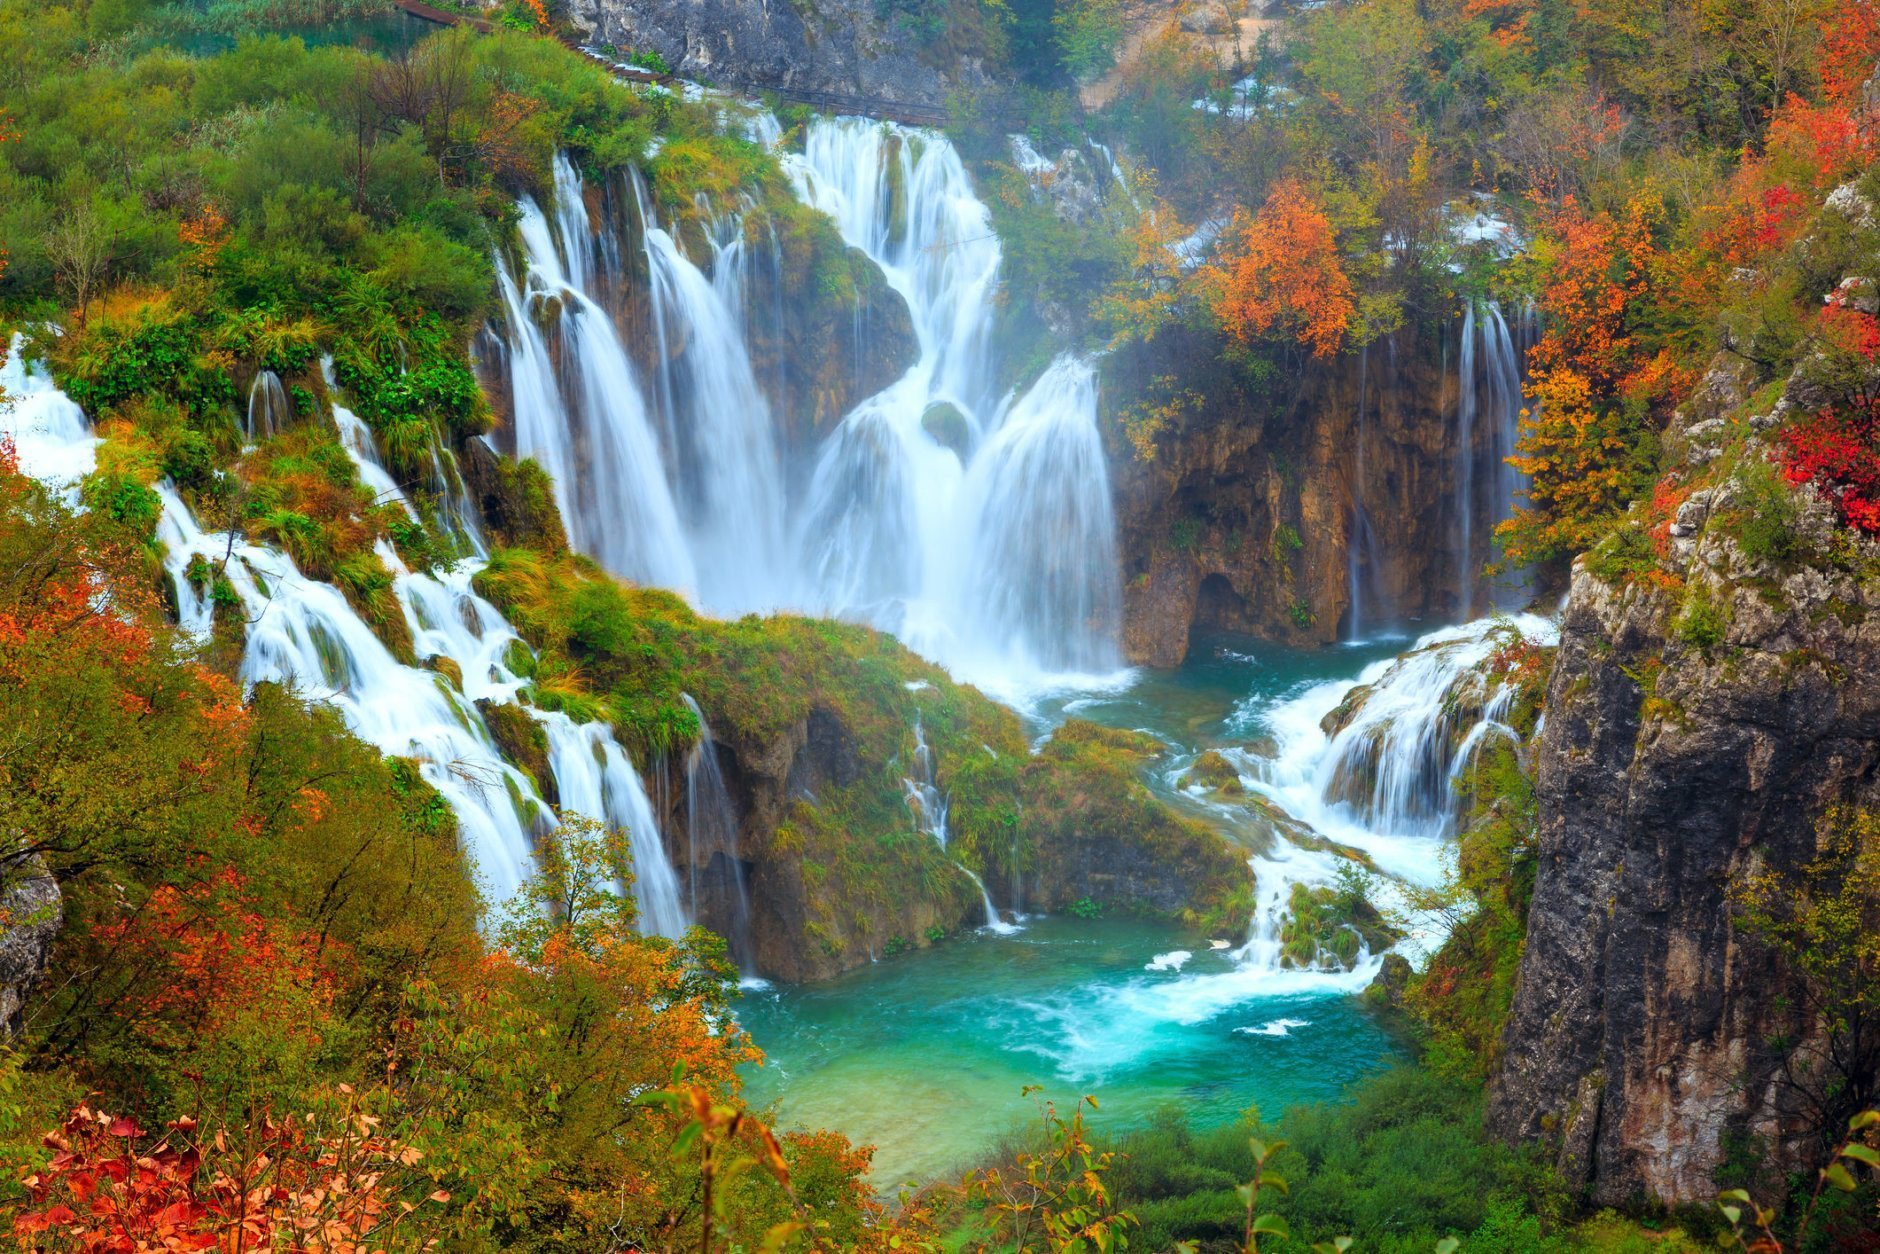 The waterfalls of Plitvice National Park in Croatia